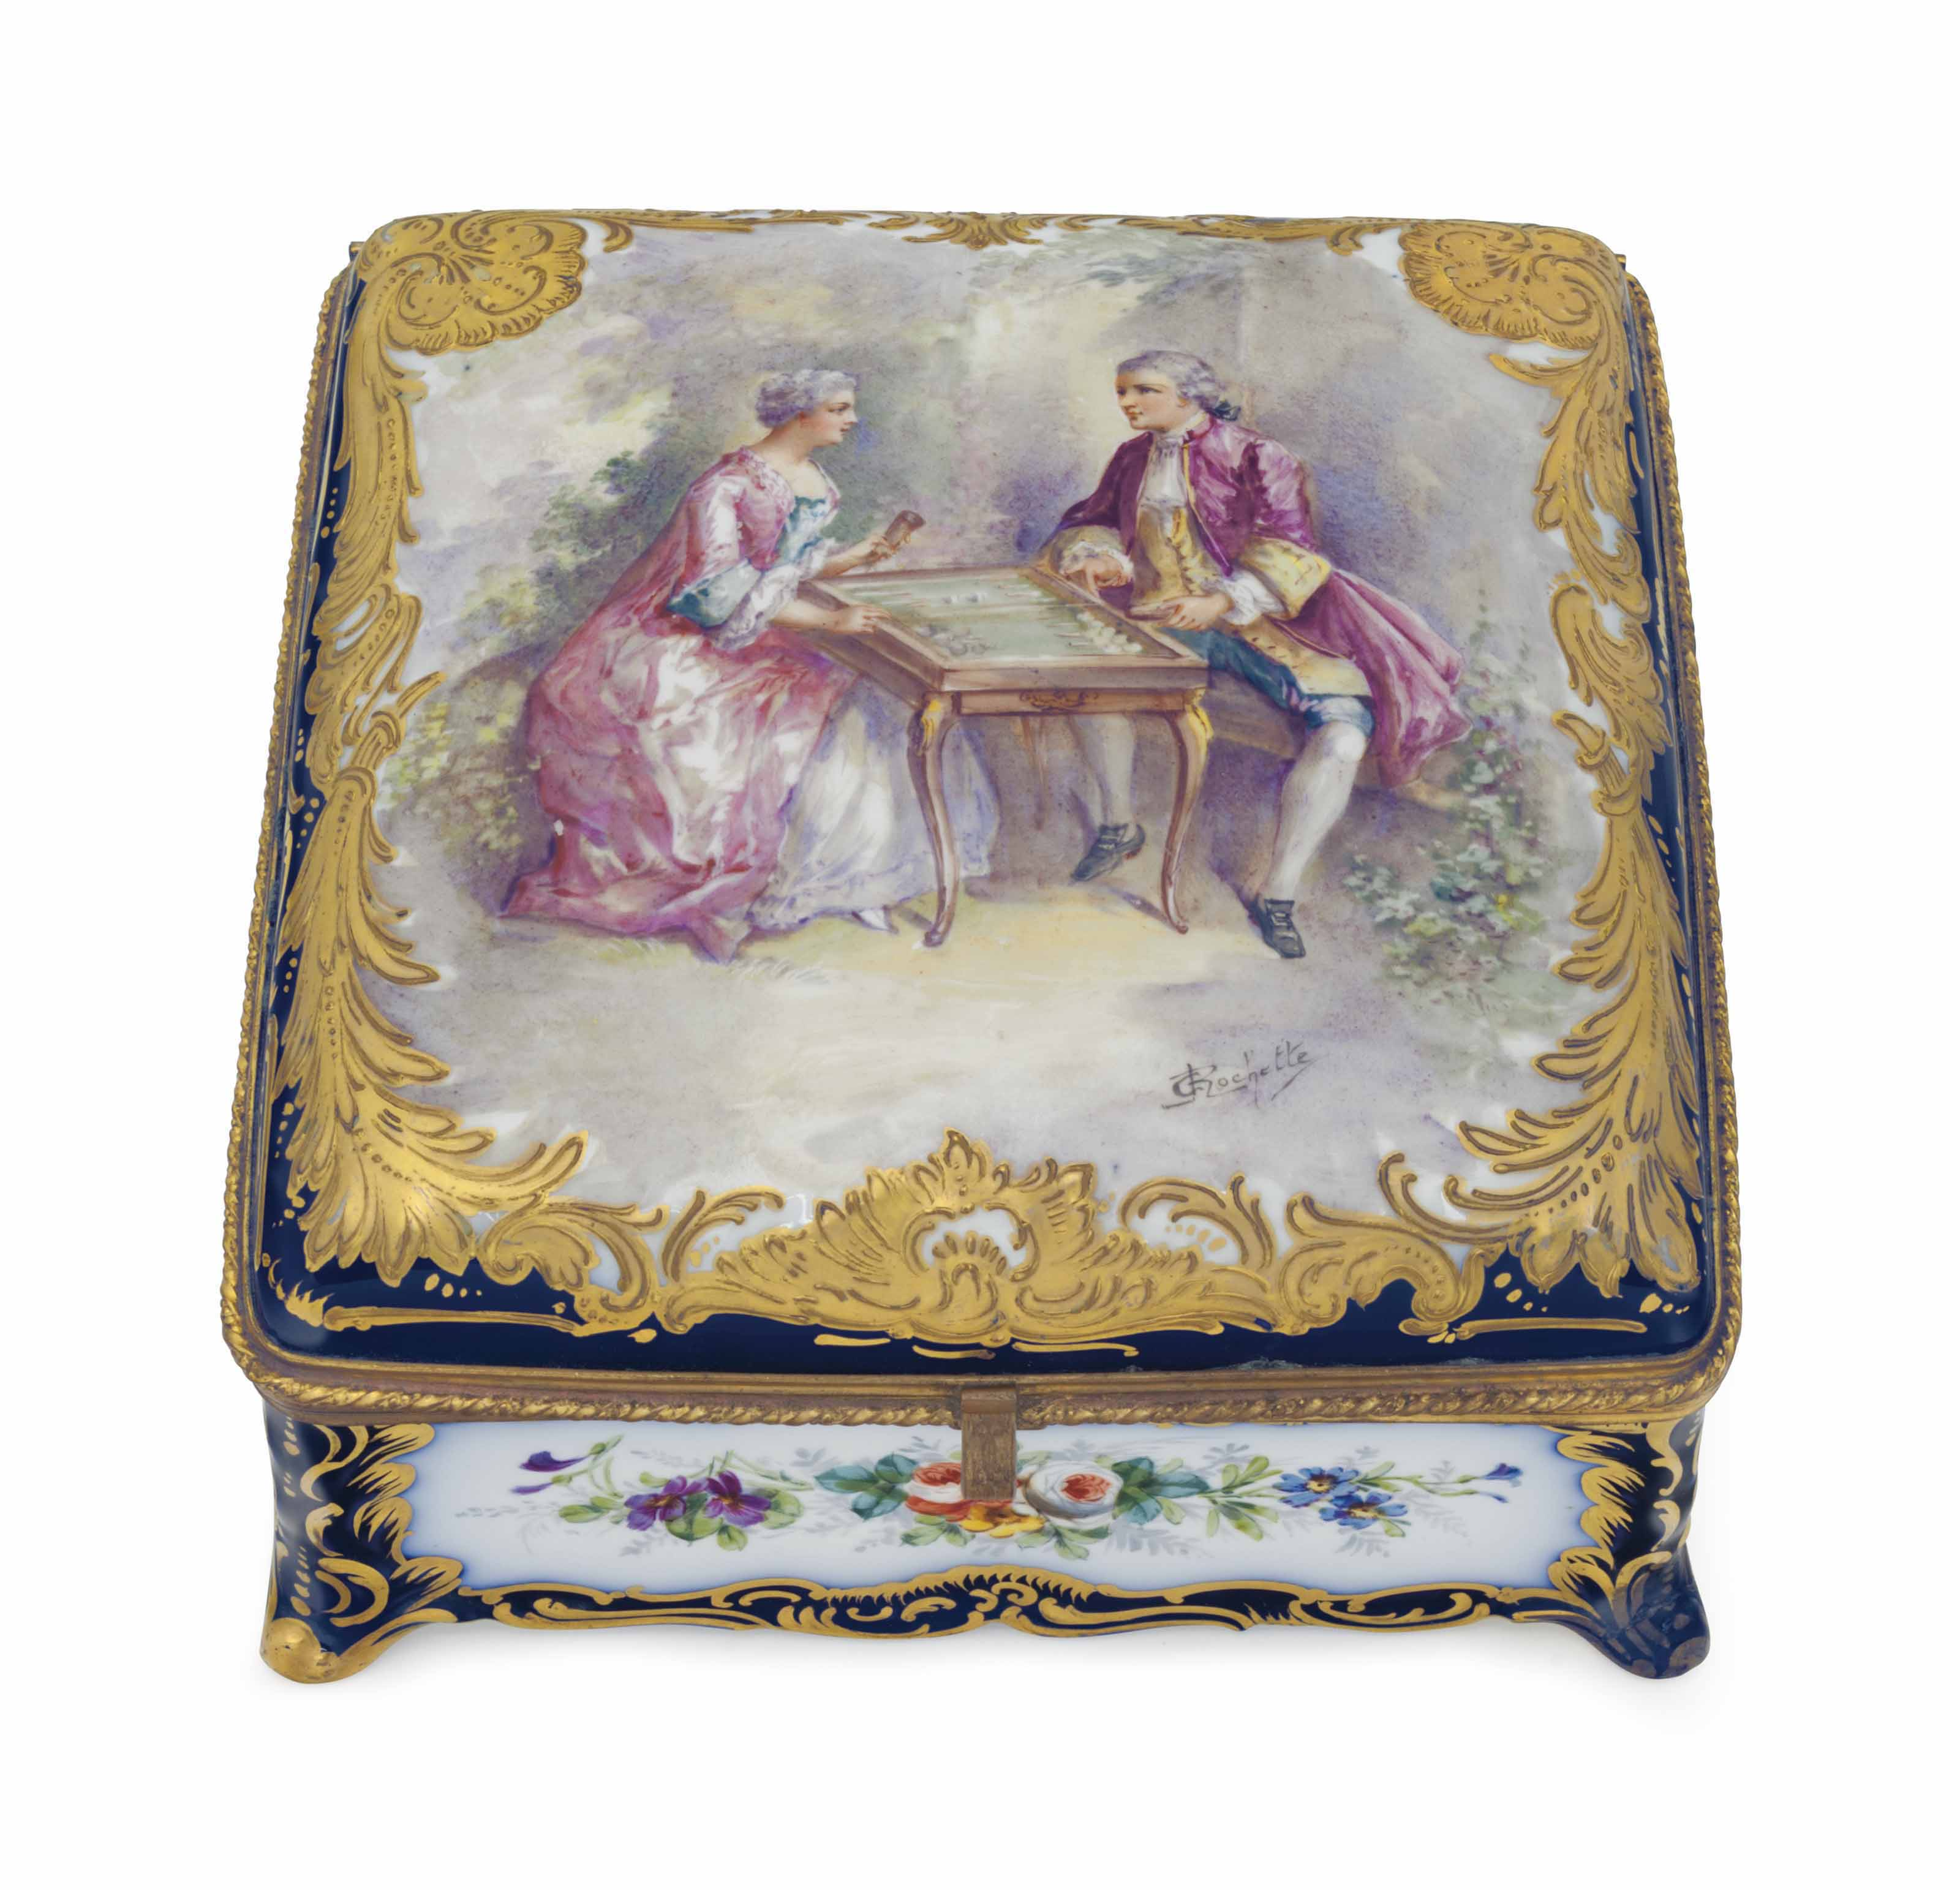 A SEVRES STYLE PORCELAIN COBALT-BLUE GROUND JEWEL-BOX AND COVER